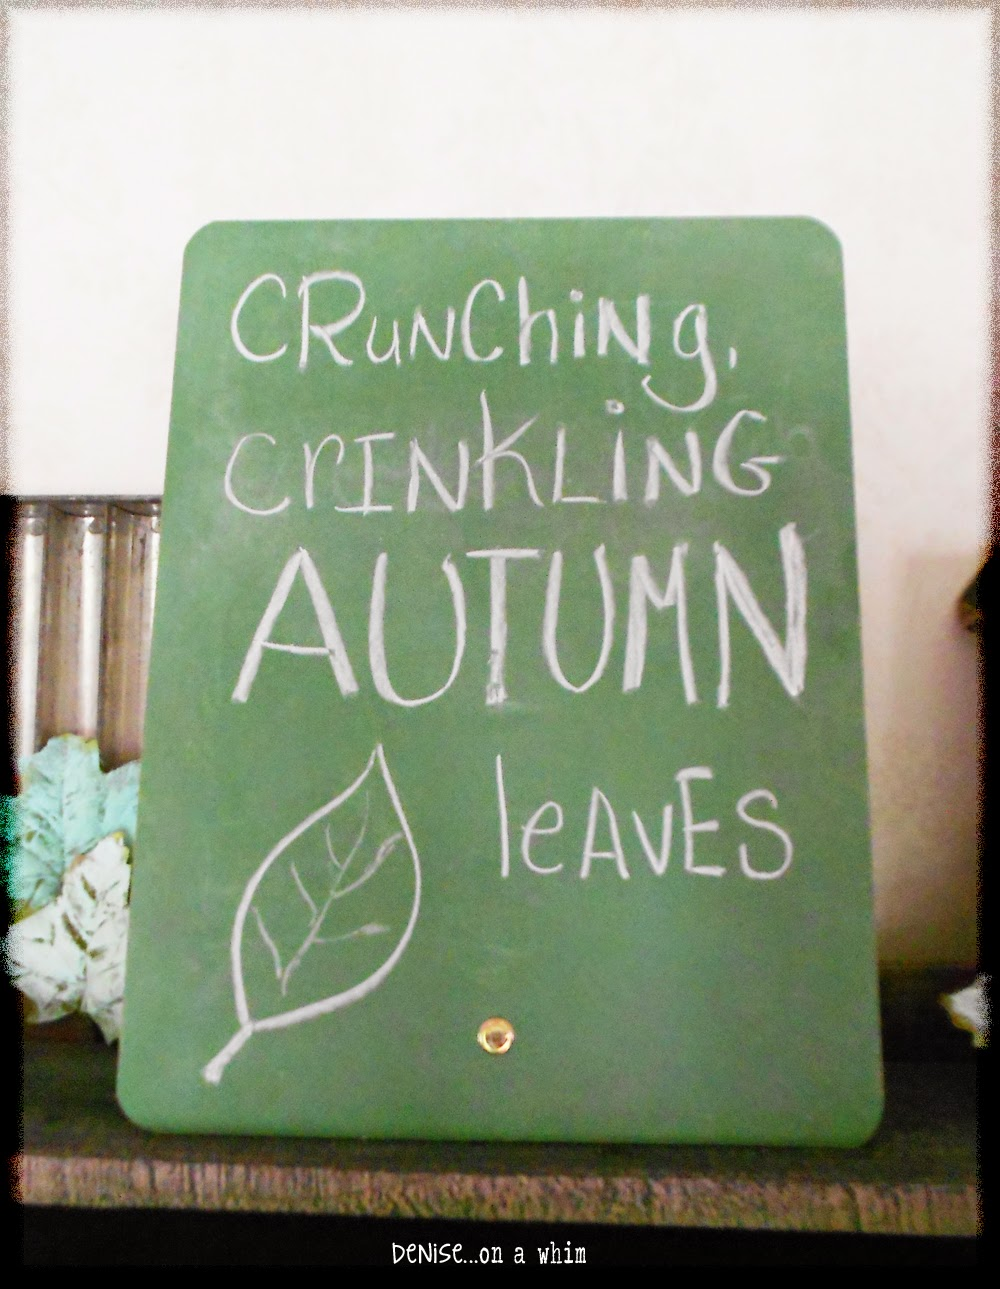 Chalkboard Easel in a Fall Vignette from Denise on a Whim